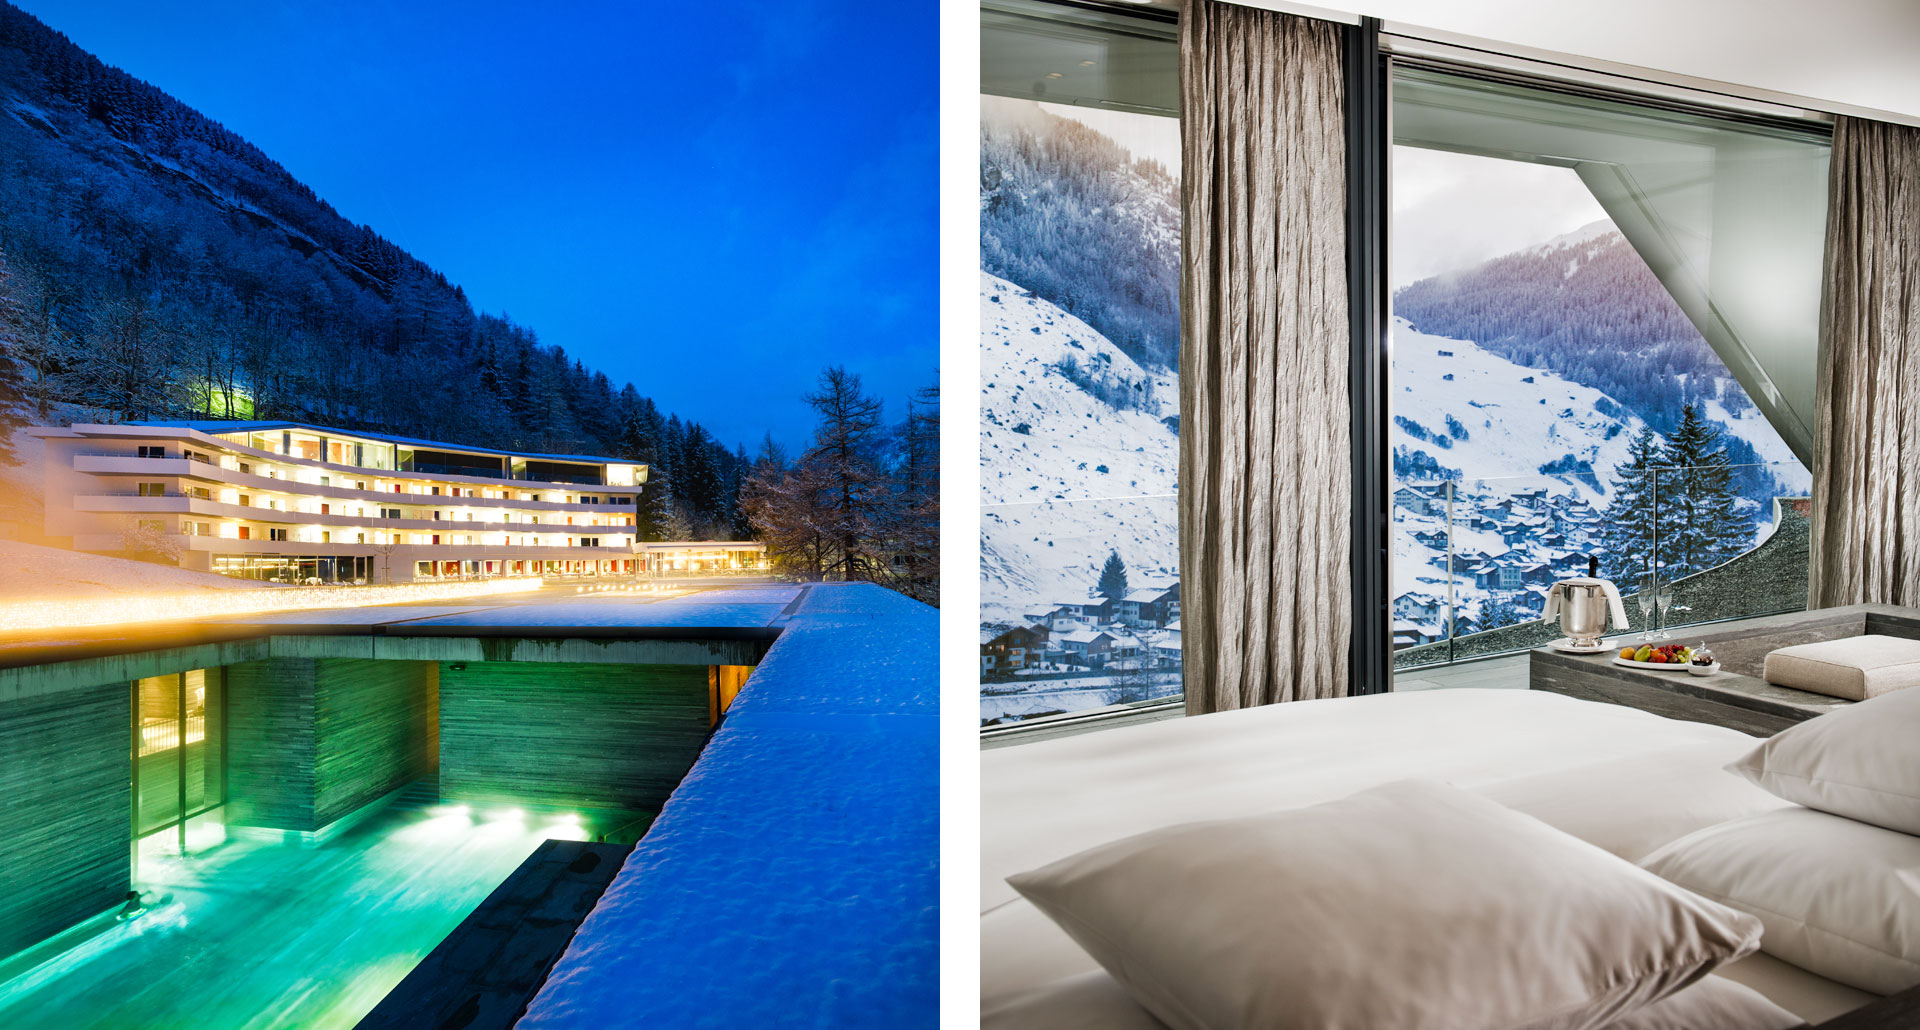 7132 Hotels - boutique hotel in Vals